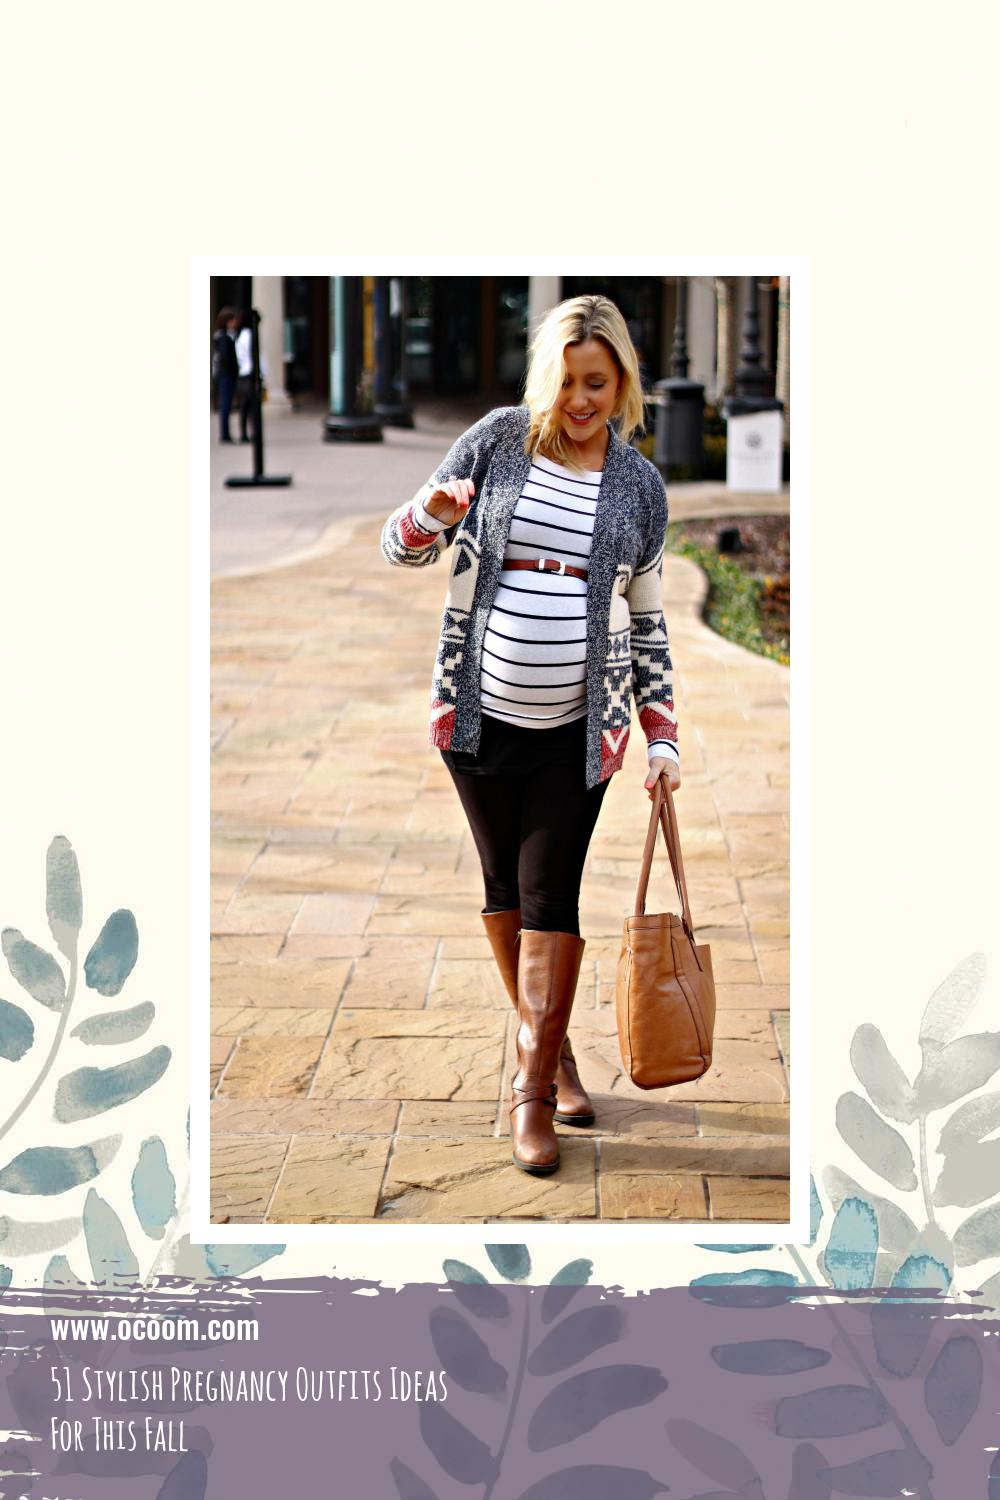 51 Stylish Pregnancy Outfits Ideas For This Fall 41